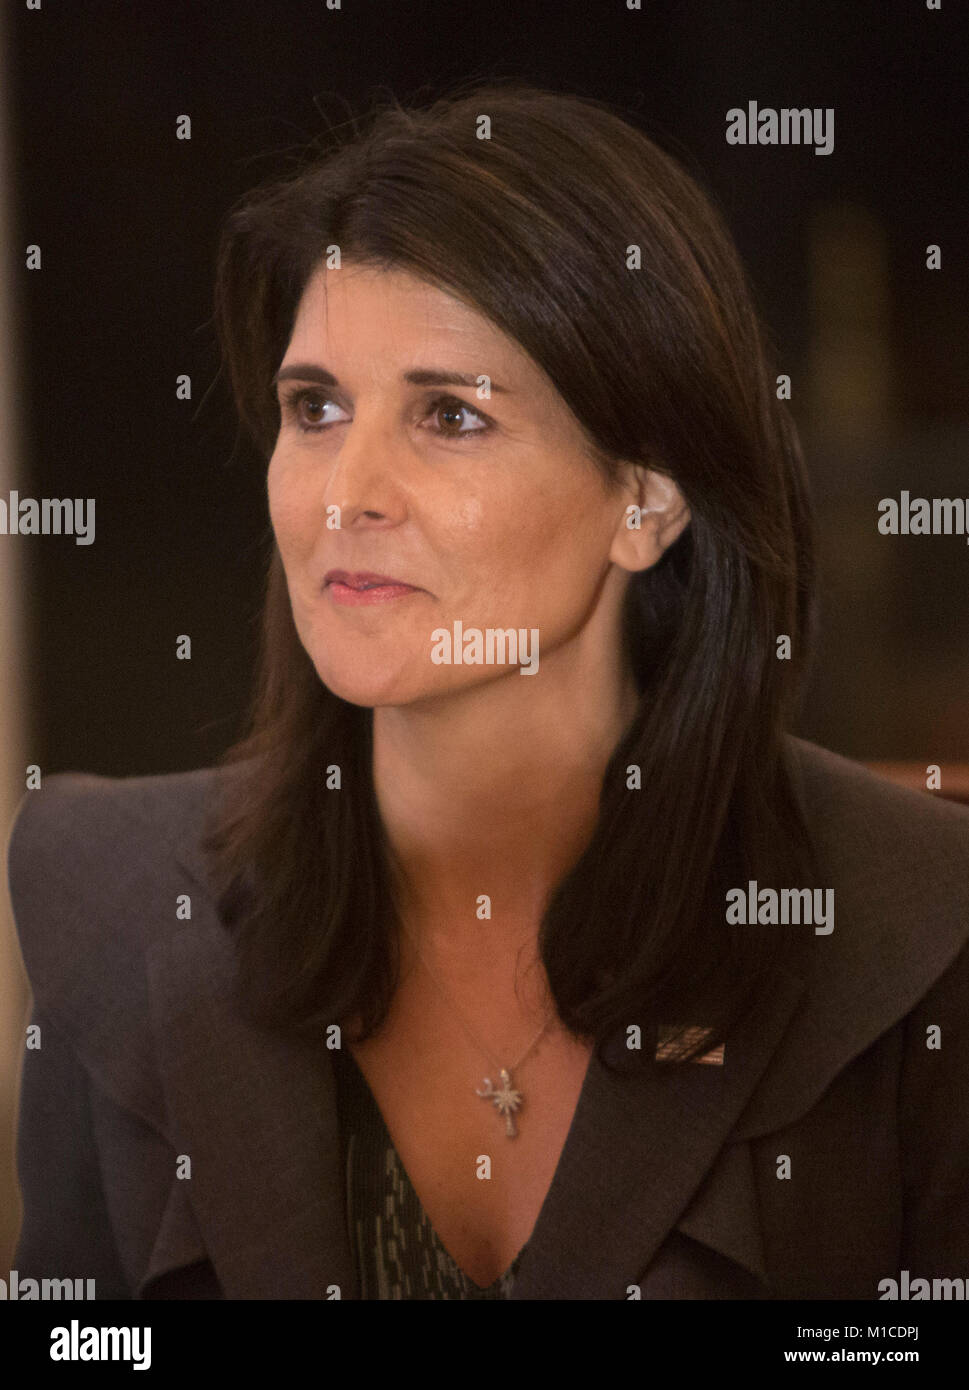 United States Ambassador to the United Nations Nikki Haley listens during a lunch with the United Nations Security - Stock Image